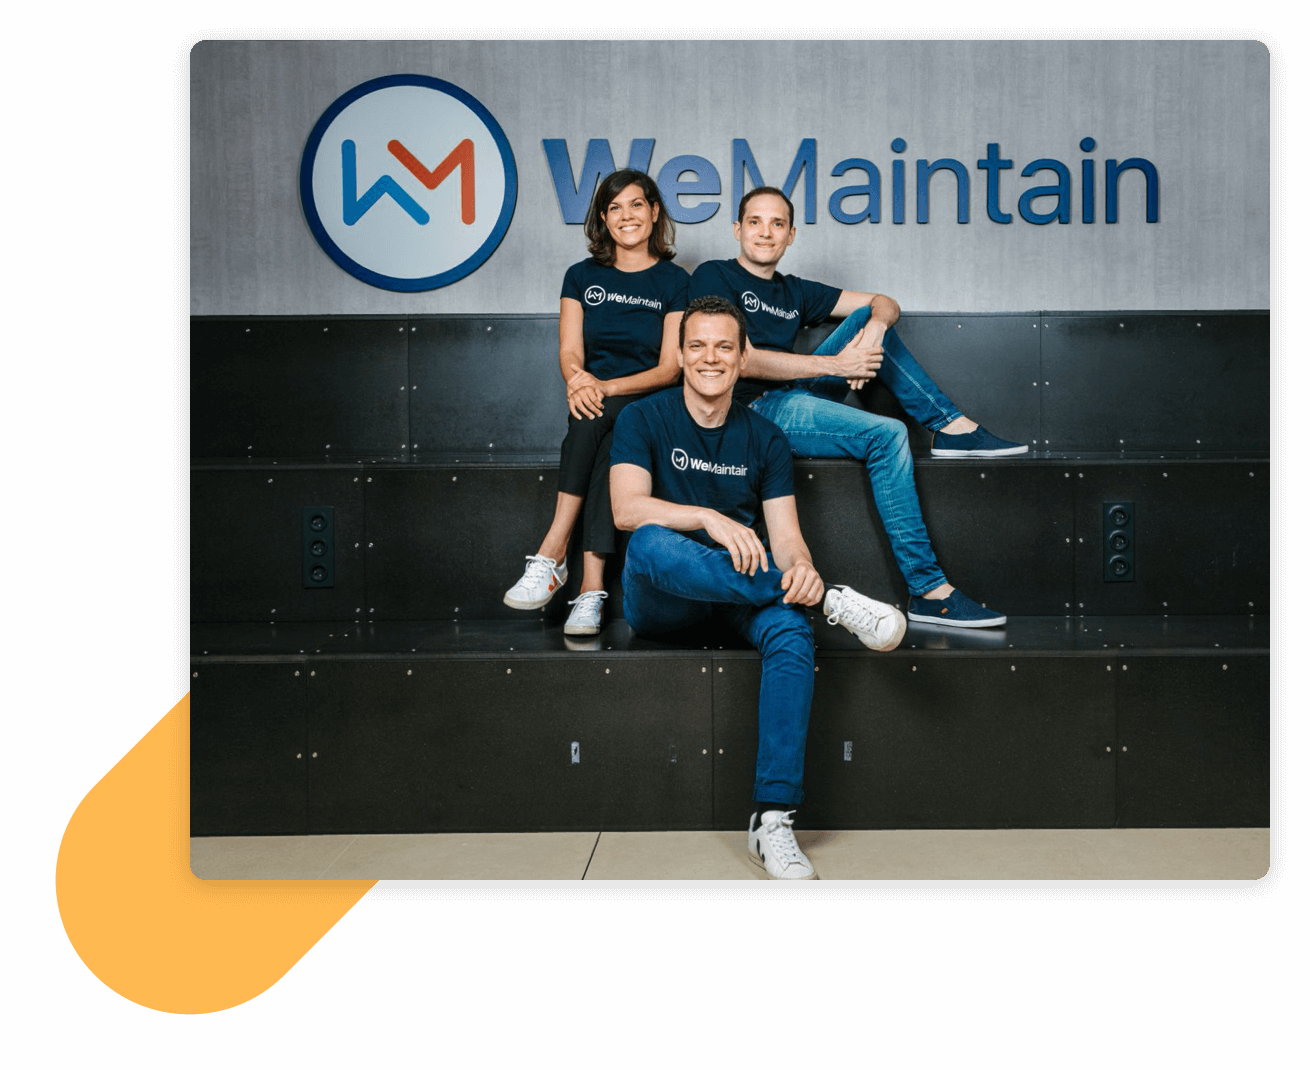 WeMaintain's founders